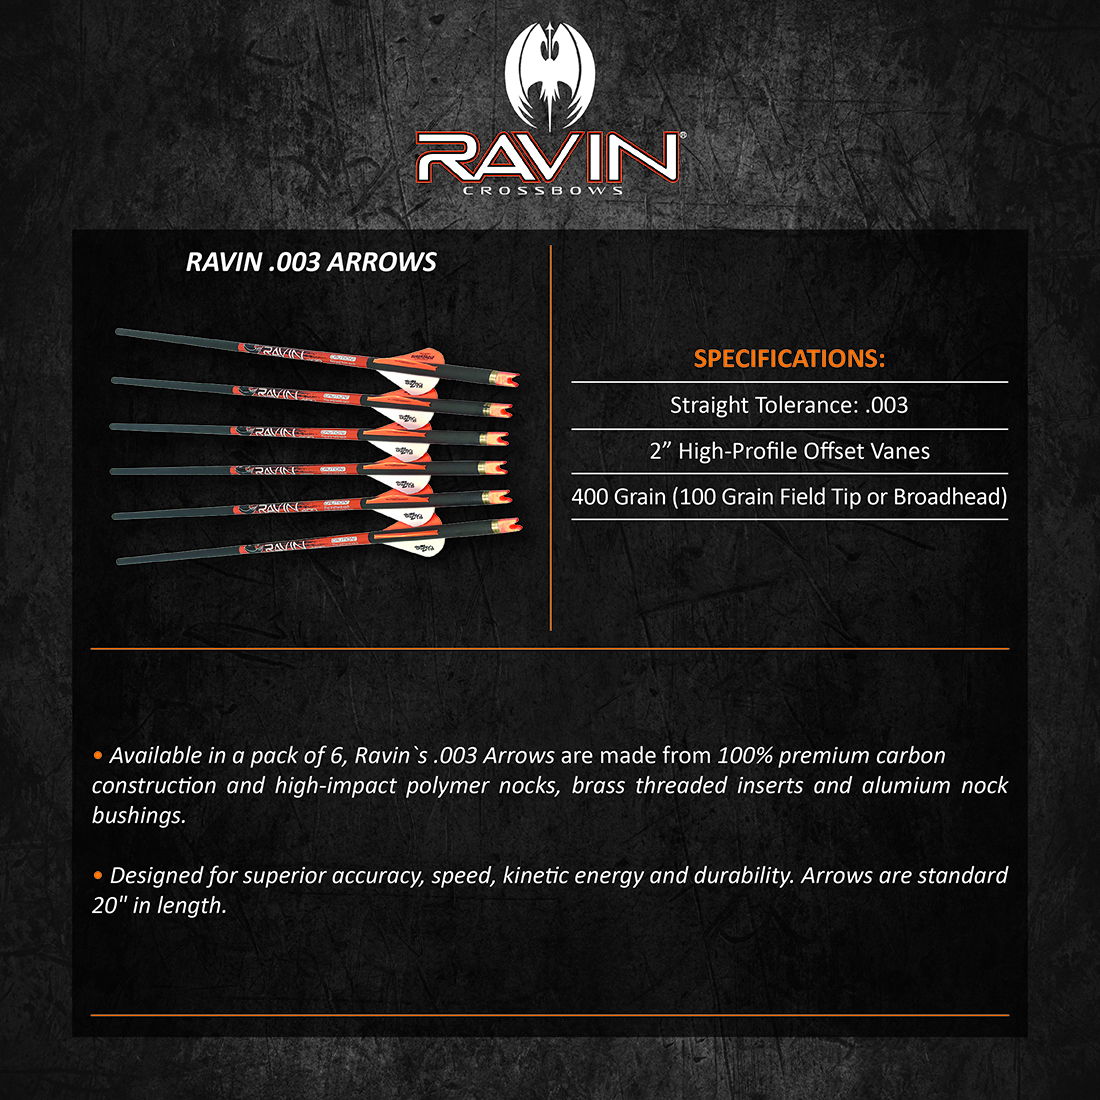 Ravin_003_Arrows_Product_Description